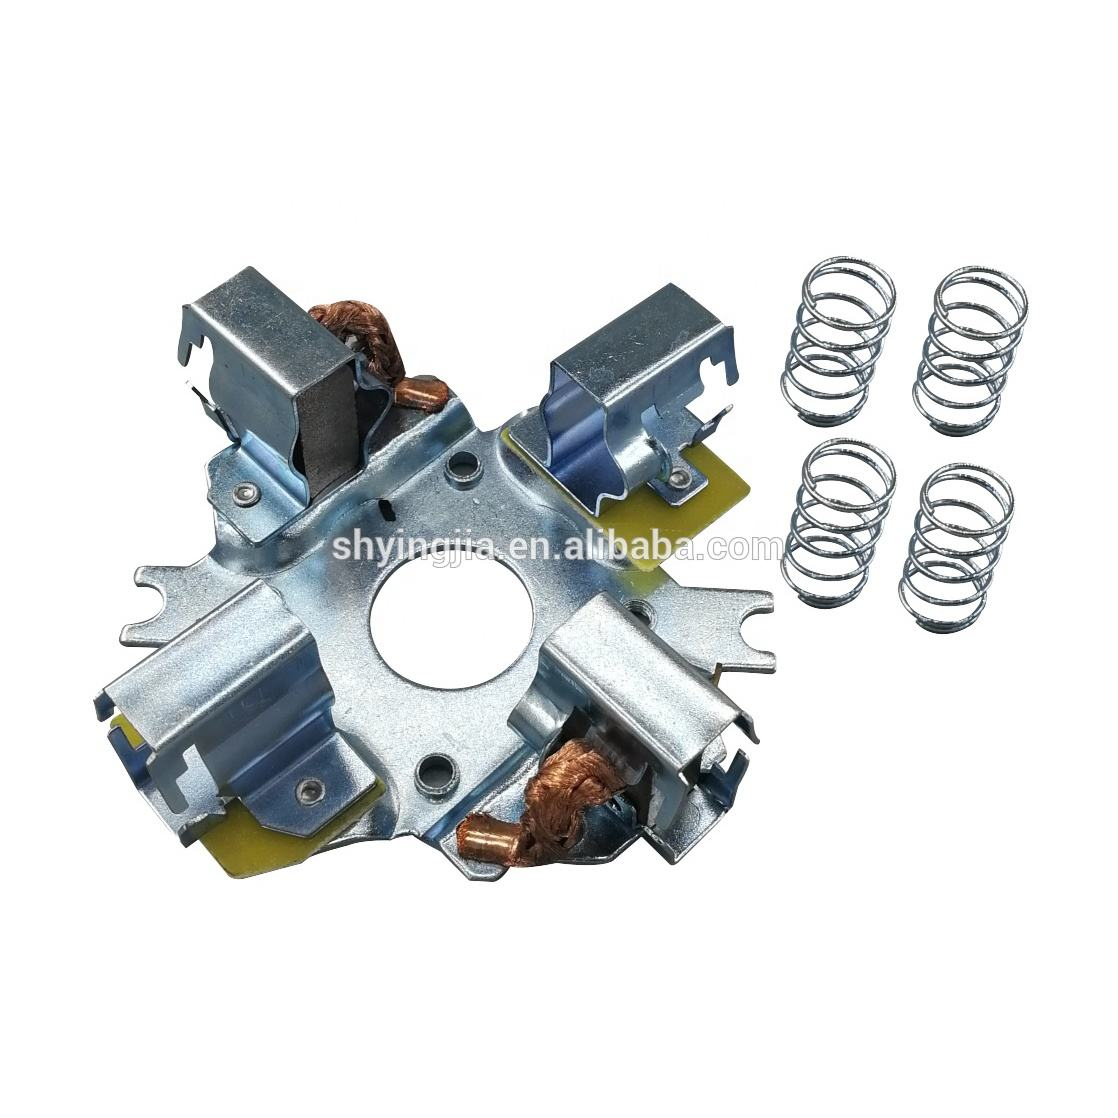 Auto Starter Parts Carbon Brush Holder Assembly DC Motor OEM 6211877/40800090723For Bosch 367 Series Starters